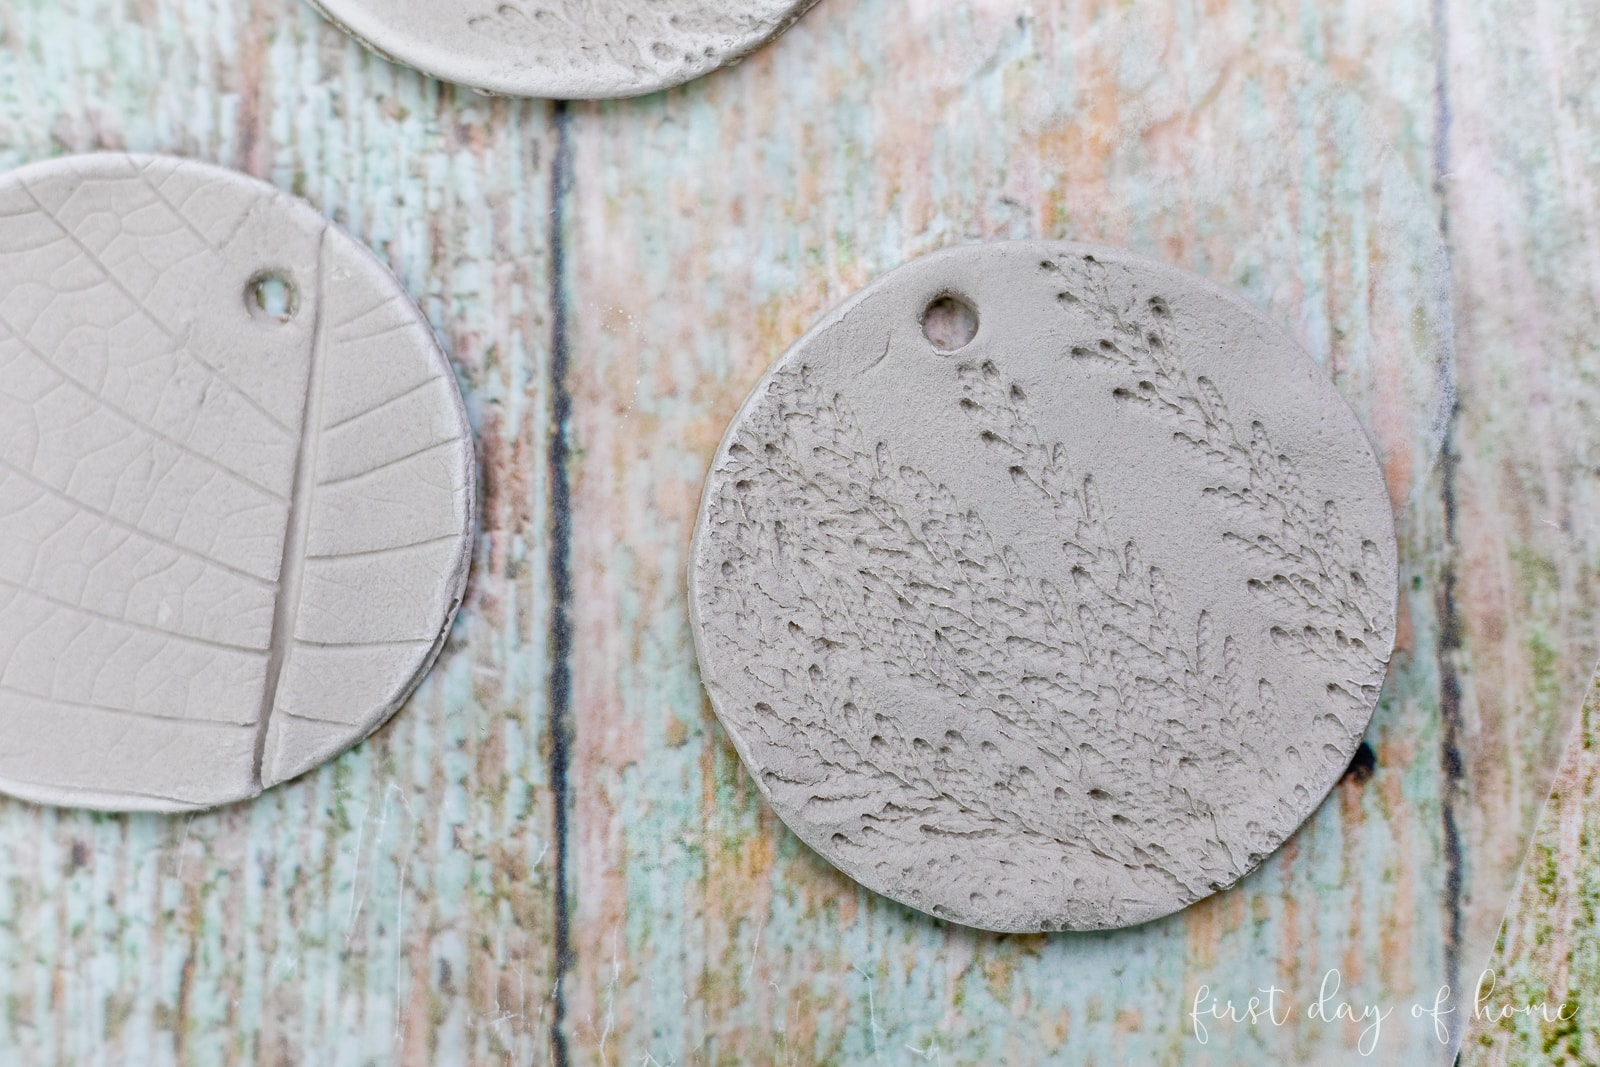 Round air dry clay ornament with imprint of cedar branch before drying